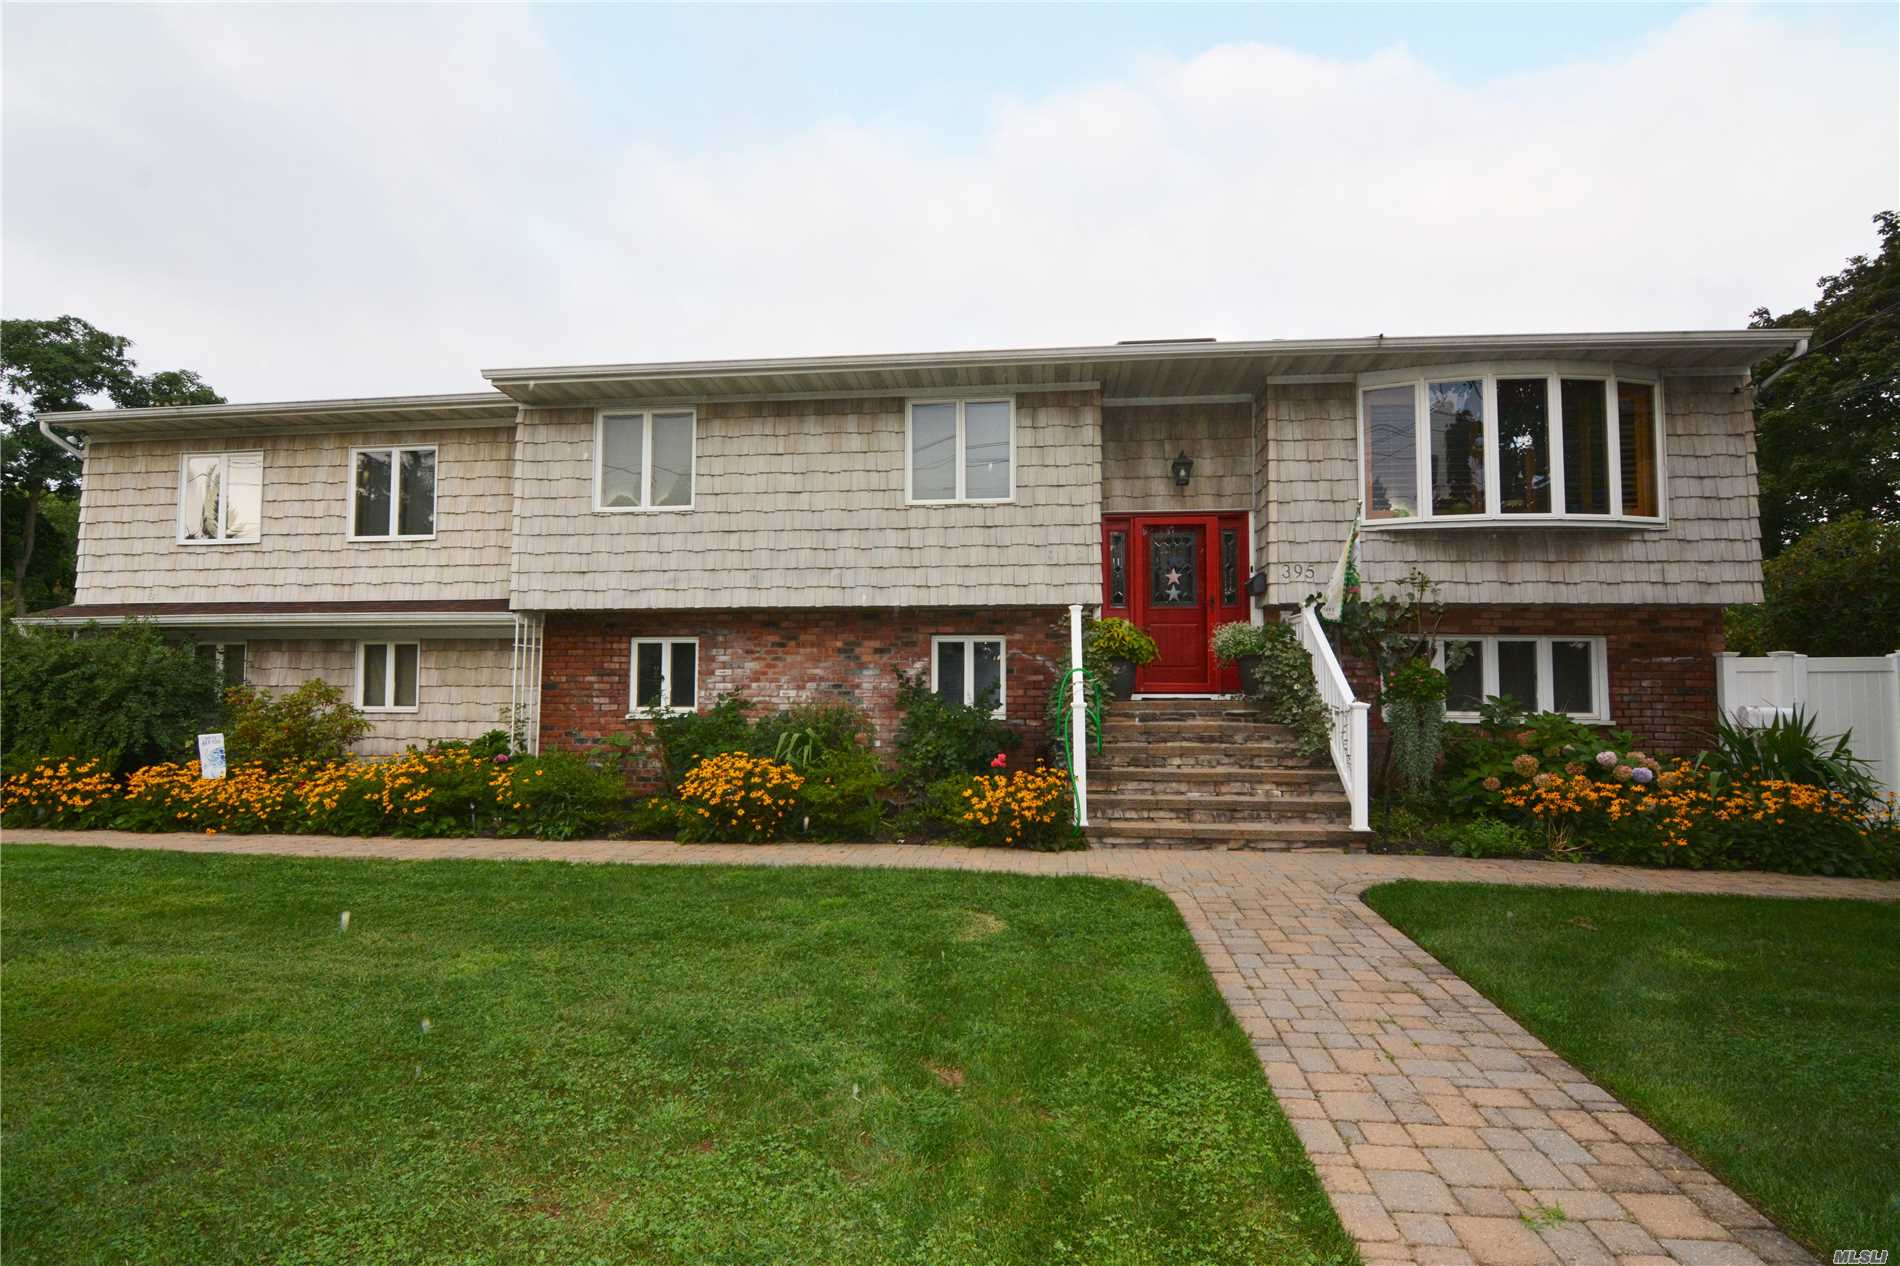 This legal (with permits) two-family offers room for all and then some! Spacious home with park-like grounds. Resort-like pool area. Large master bedroom with en-suite. Skylights and sun throughout. An absolute must-see!